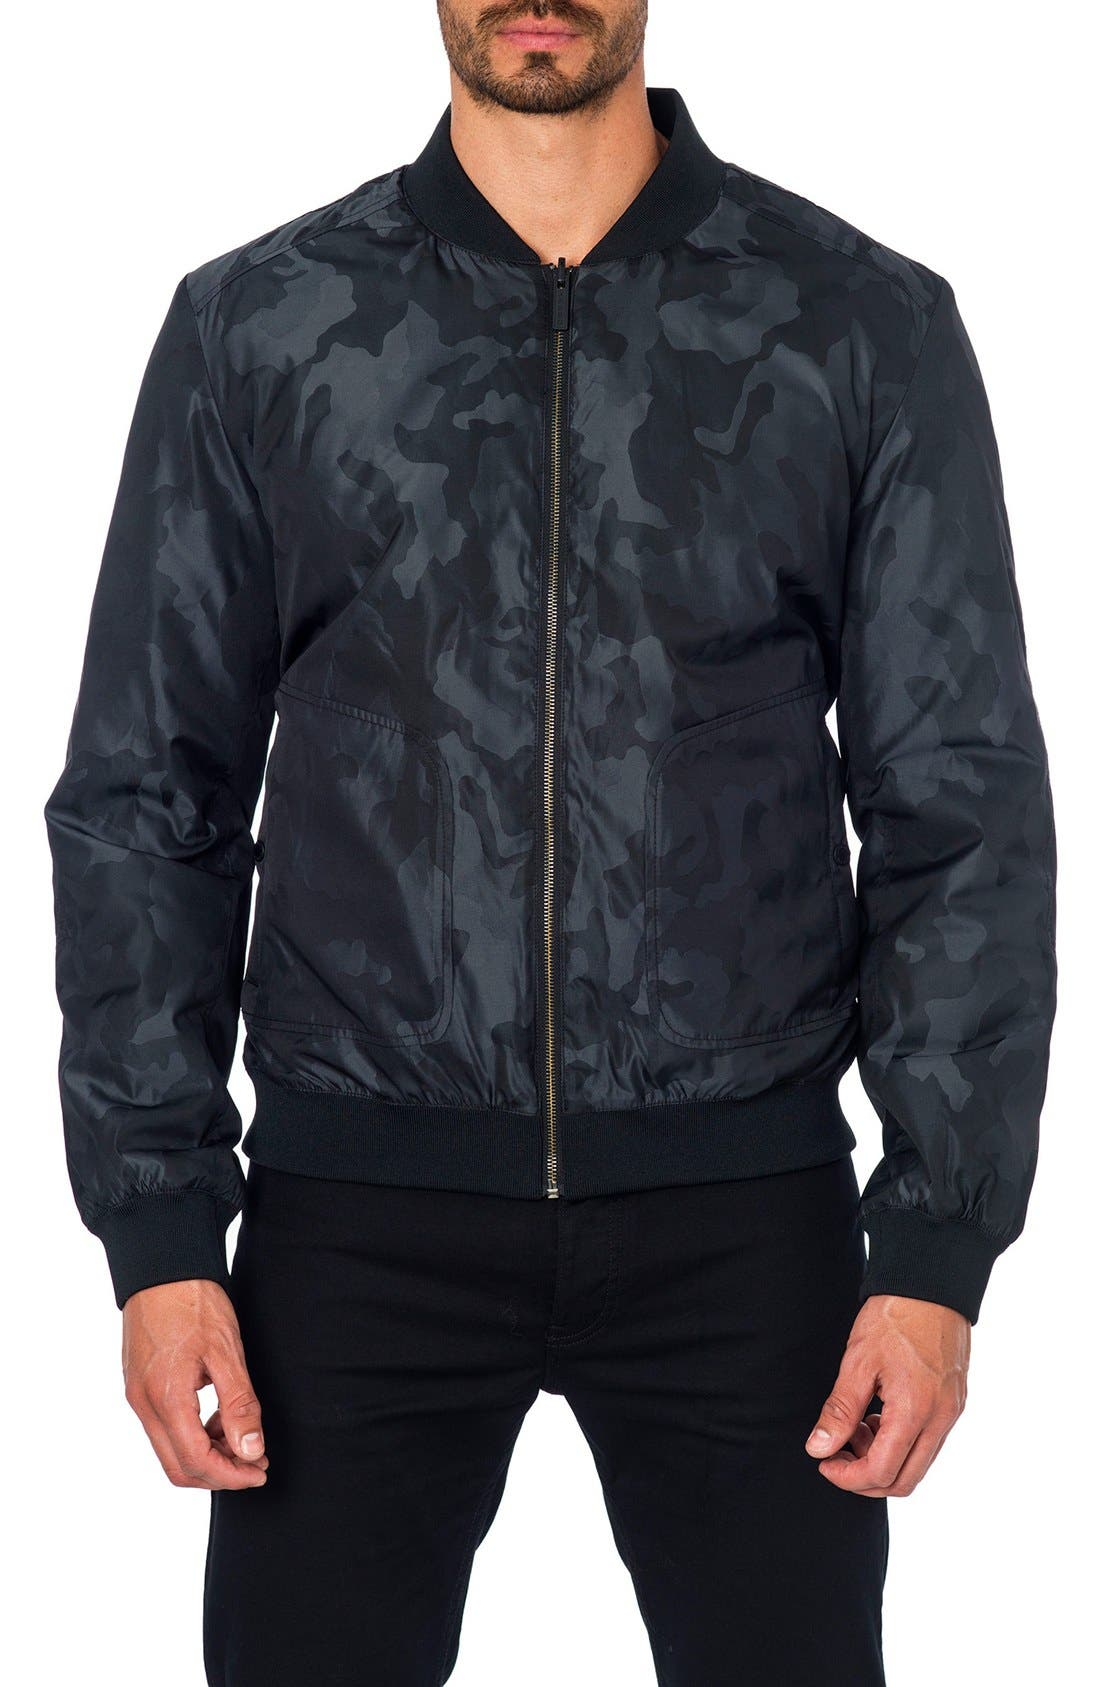 New York Reversible Bomber Jacket,                         Main,                         color, Black Camo/ Black Quilted